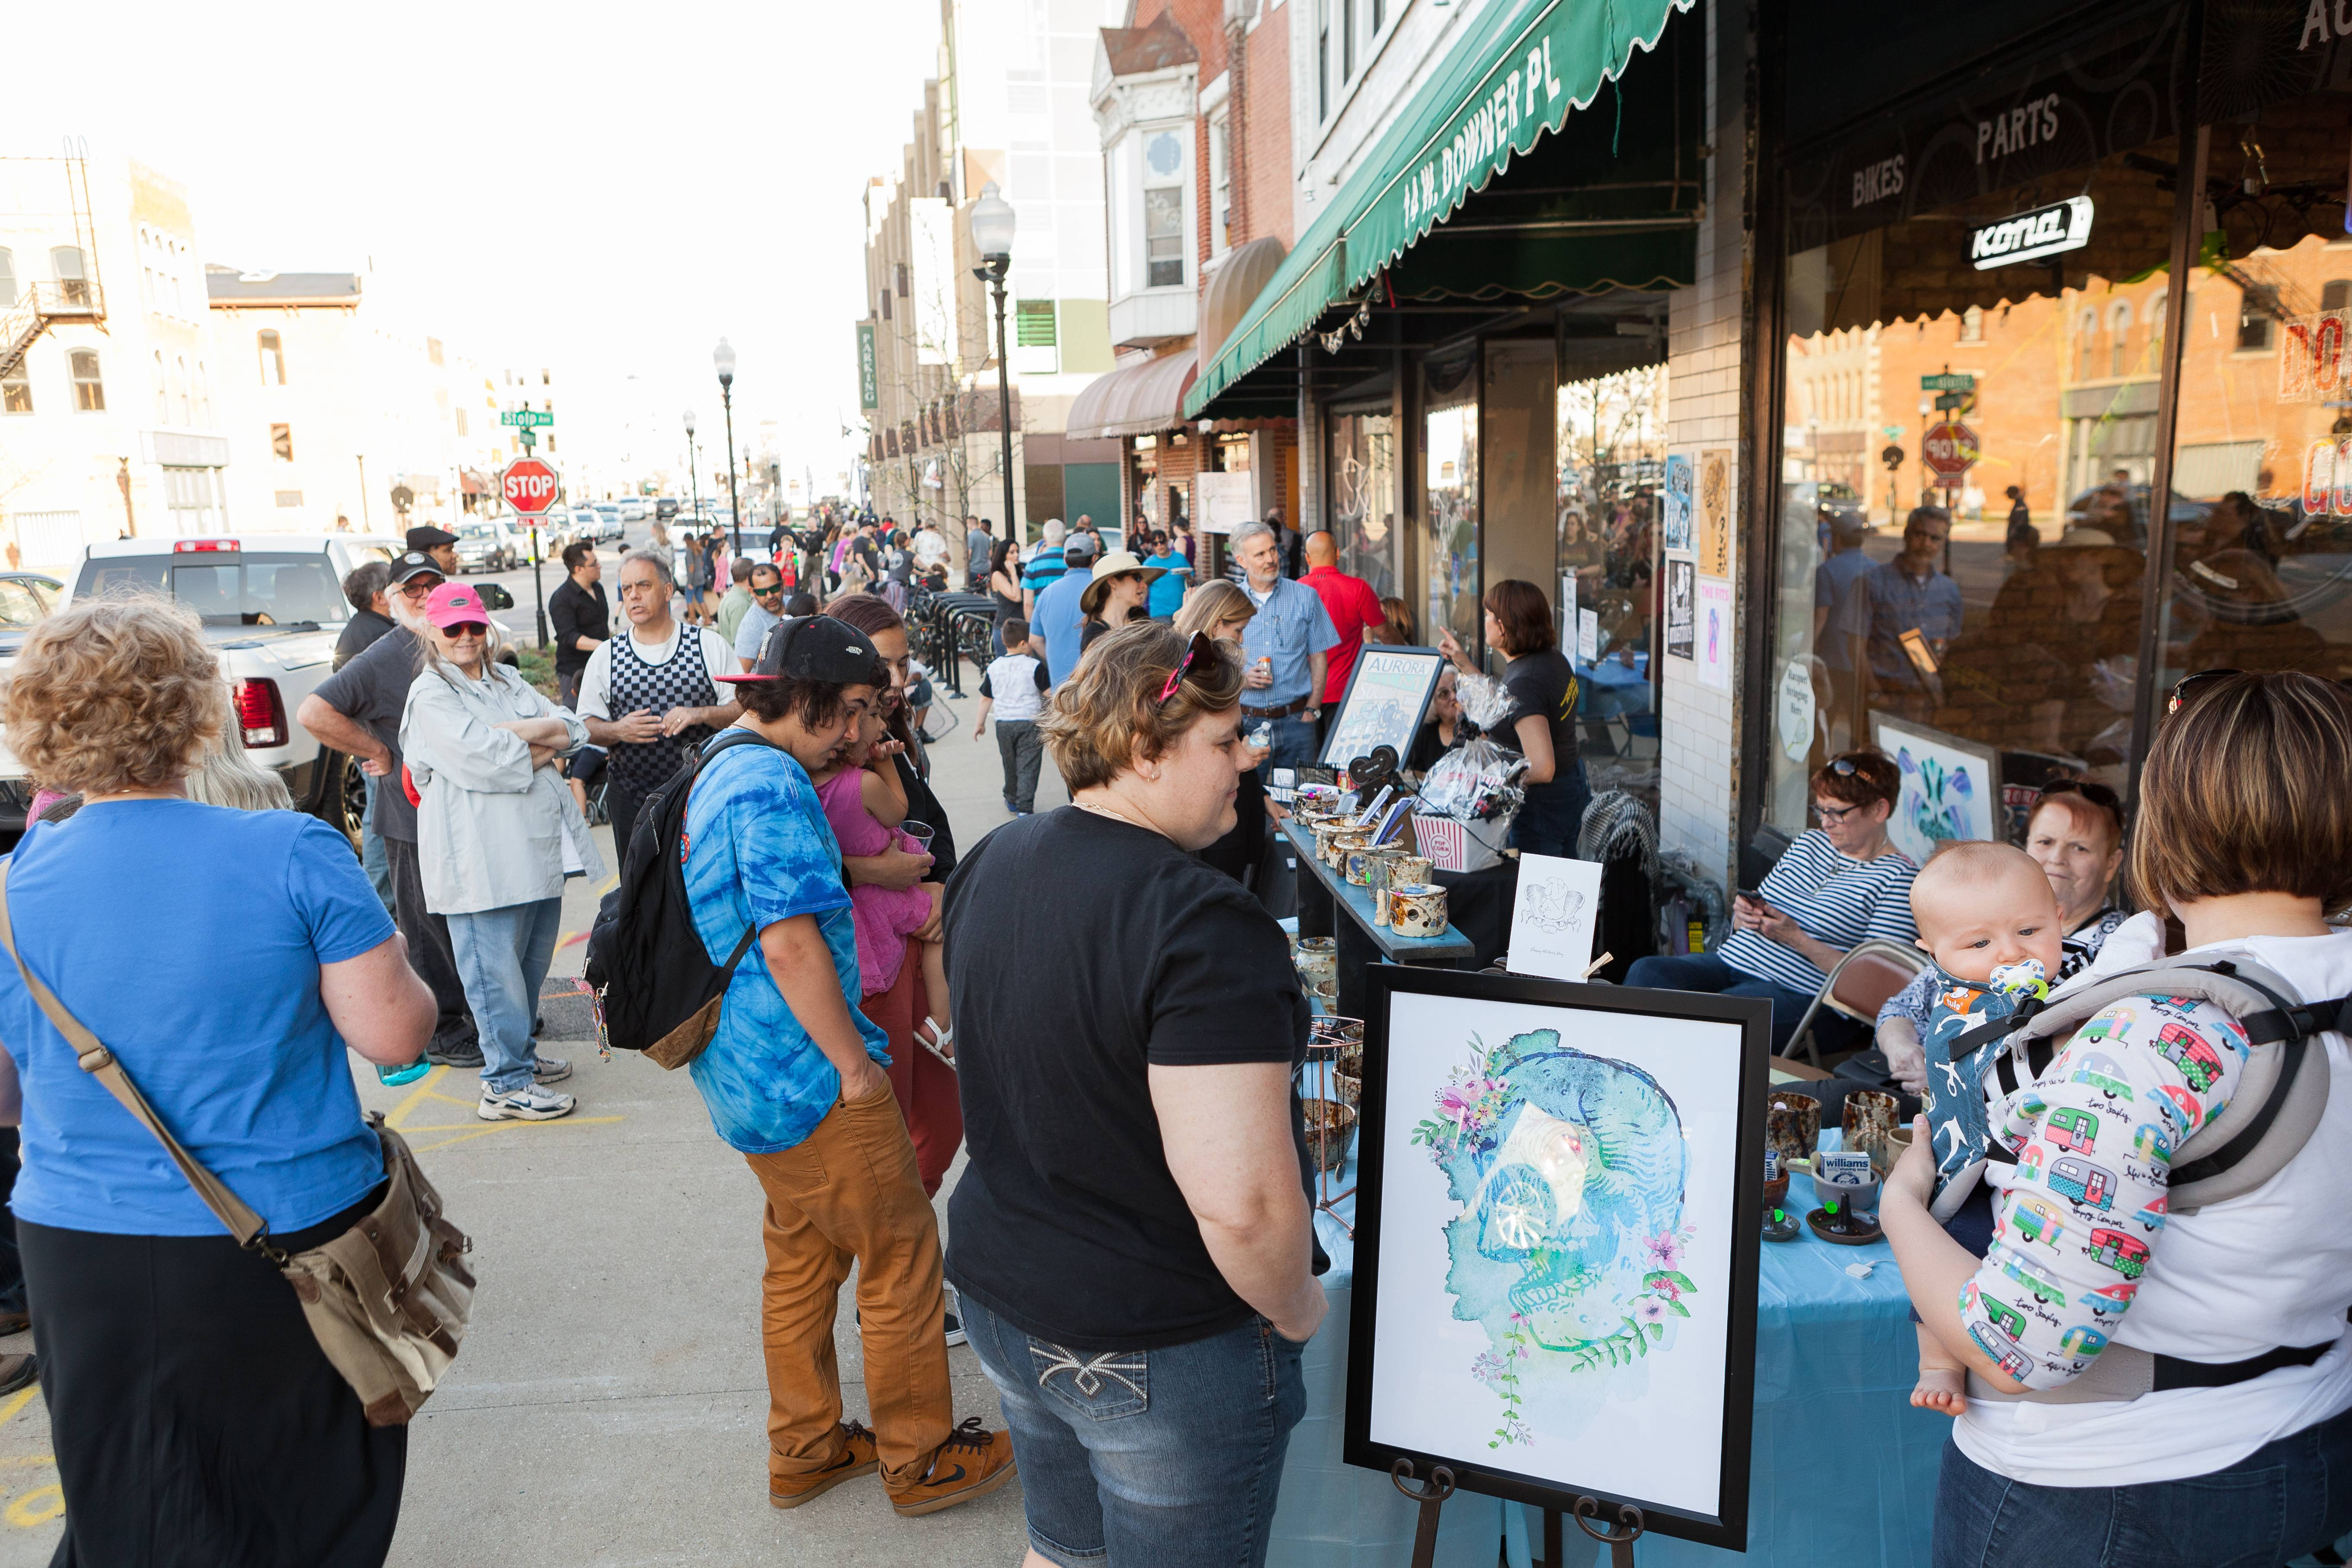 First Fridays returns on June 1 with an official Illinois Bicentennial Birthday Bash and more than 20 venues filled with art, music and more in downtown Aurora.